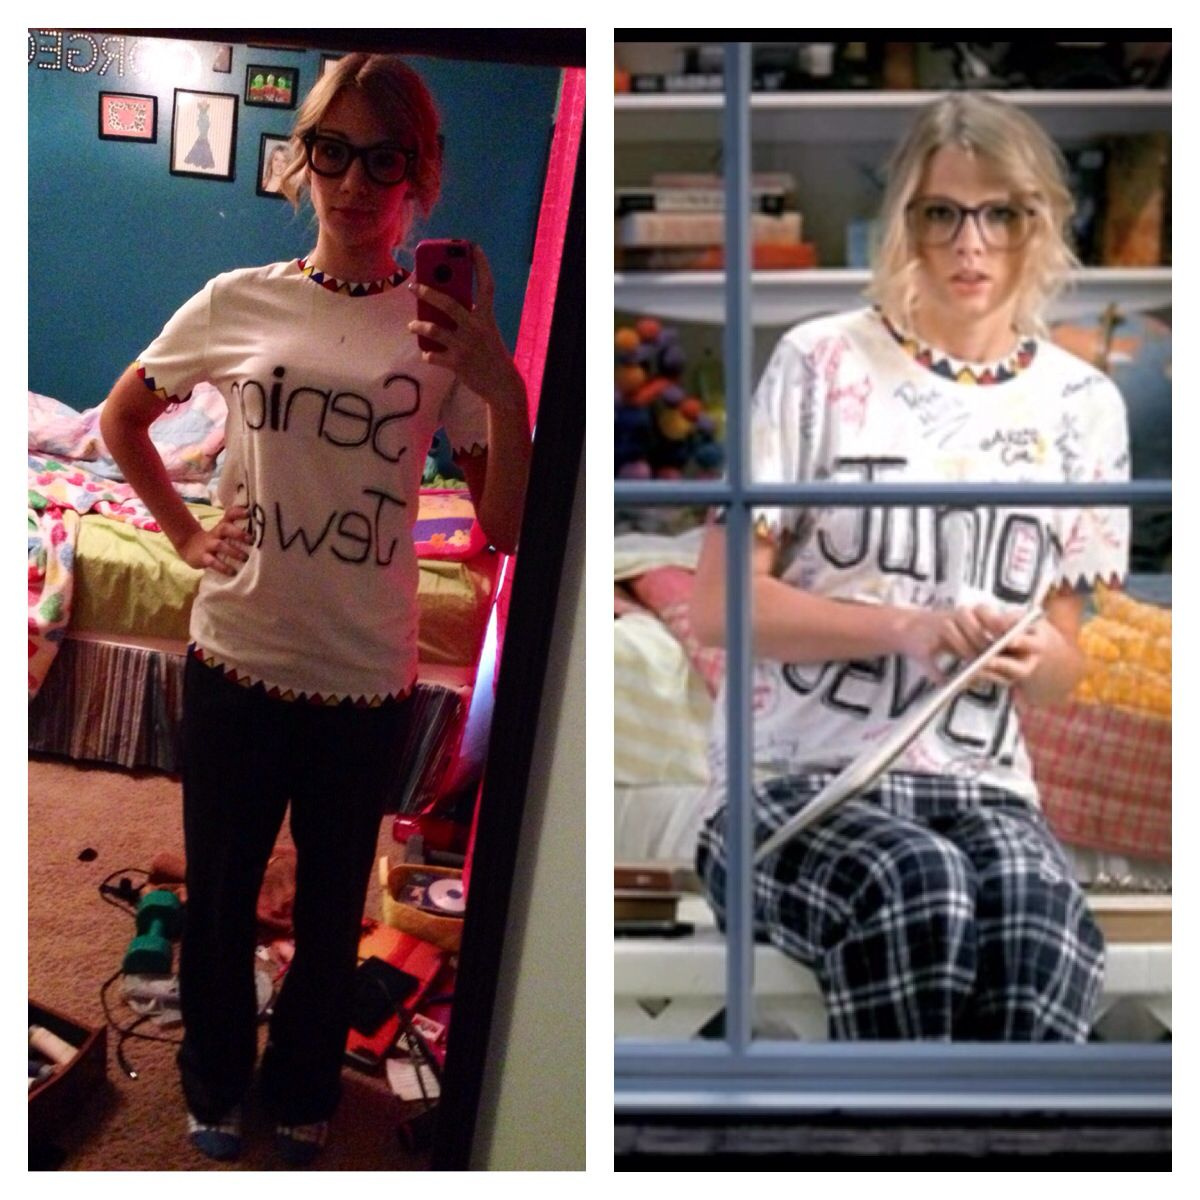 Junior jewels Taylor Swift shirt. From the You Belong With Me ...